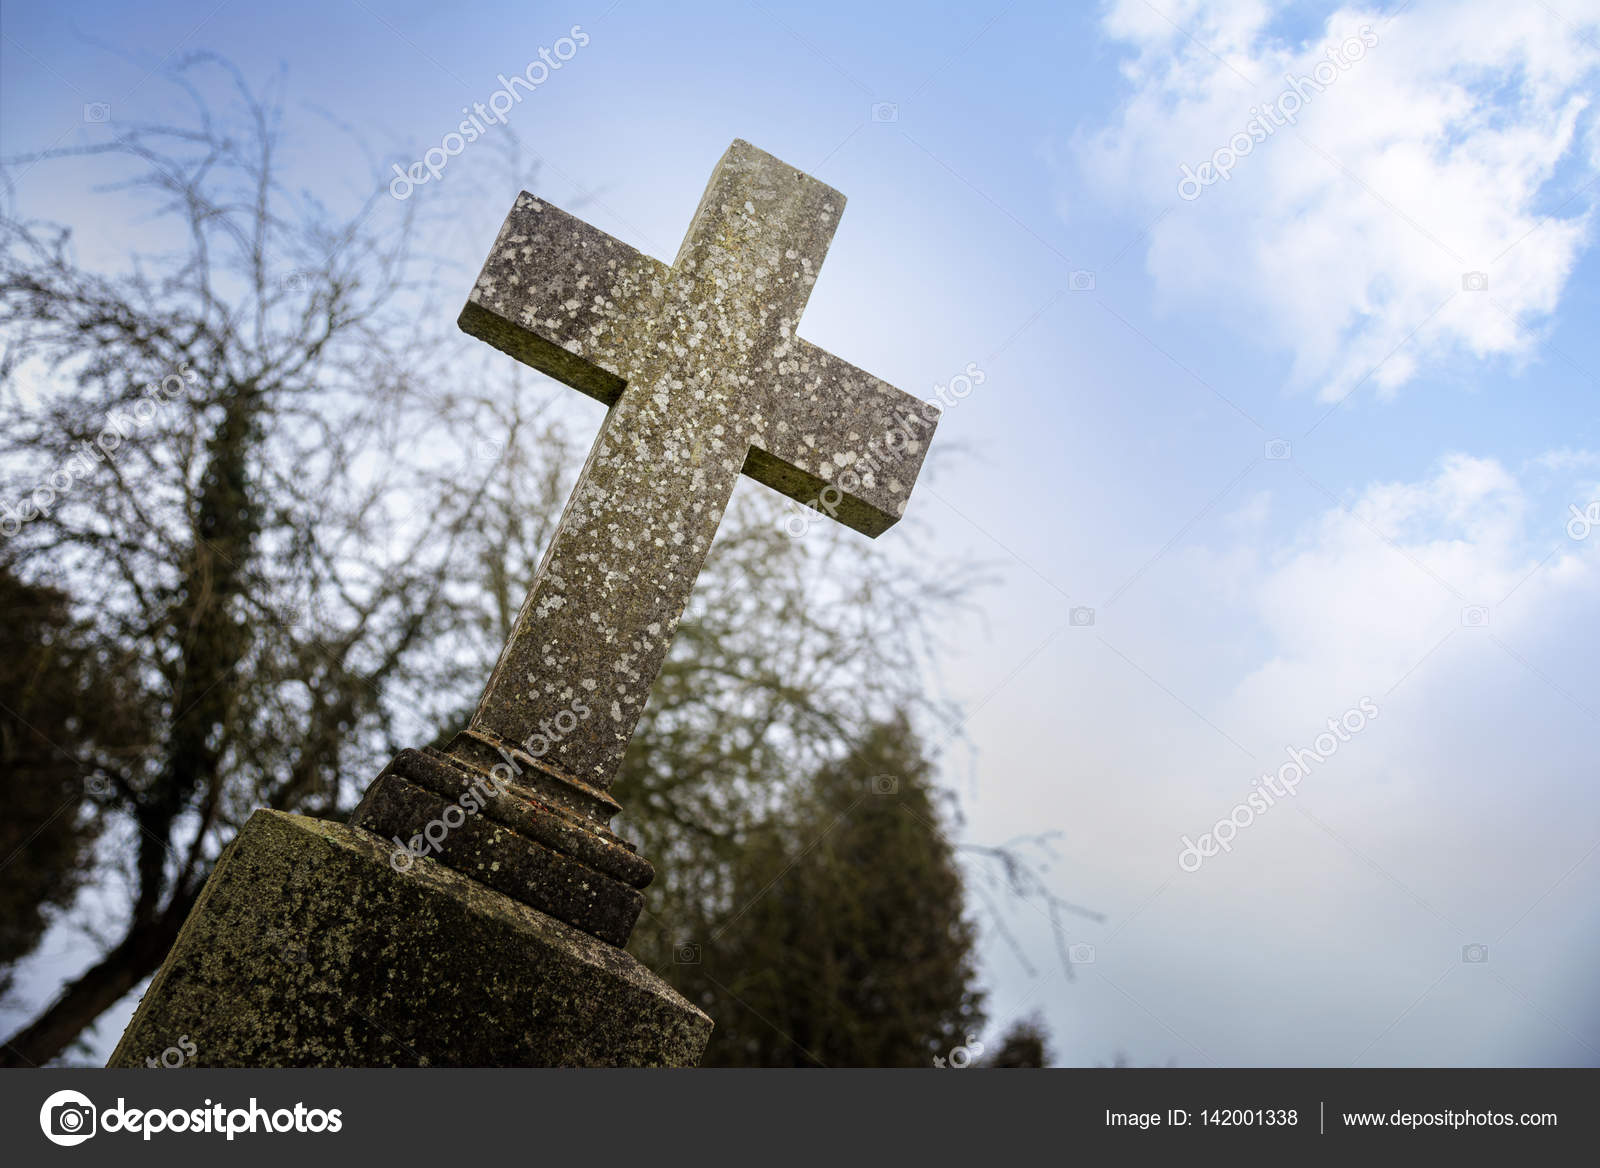 Weathered stone cross or gravestone against the blue sky memorial weathered stone cross or gravestone against the blue sky memorial day concept for war dead or religious christian symbol for holiday like good friday biocorpaavc Images